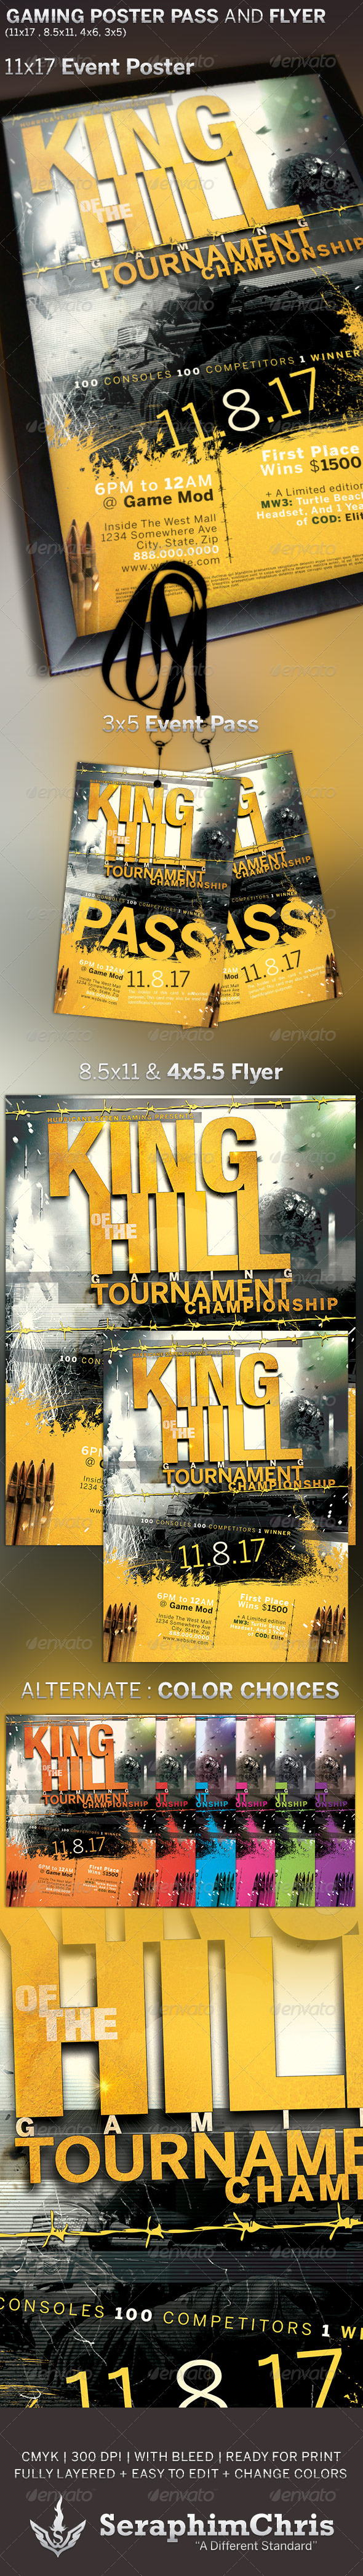 King of The Hill Gaming Poster and Event Pass - Miscellaneous Print Templates